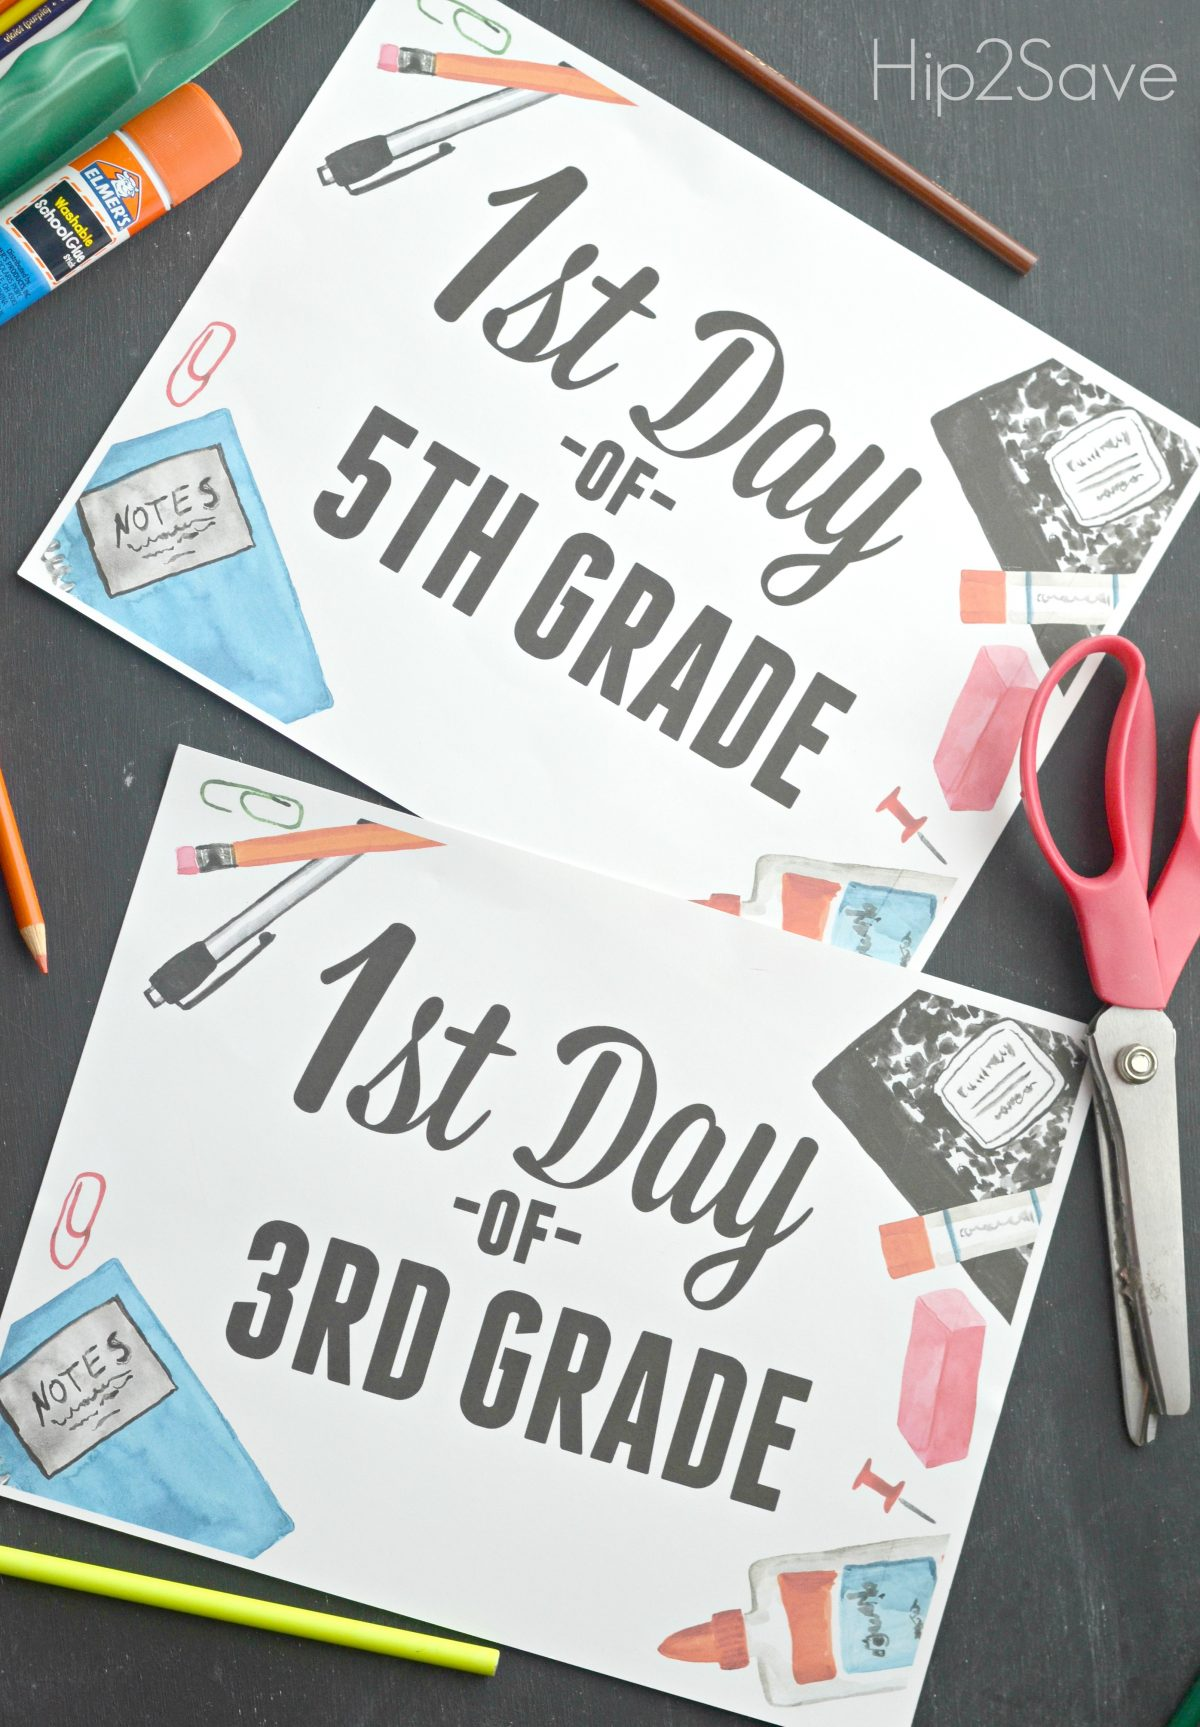 image relating to First Day of 3rd Grade Sign Printable named Cost-free Very first Working day of Faculty Printable Indications - Hip2Help you save